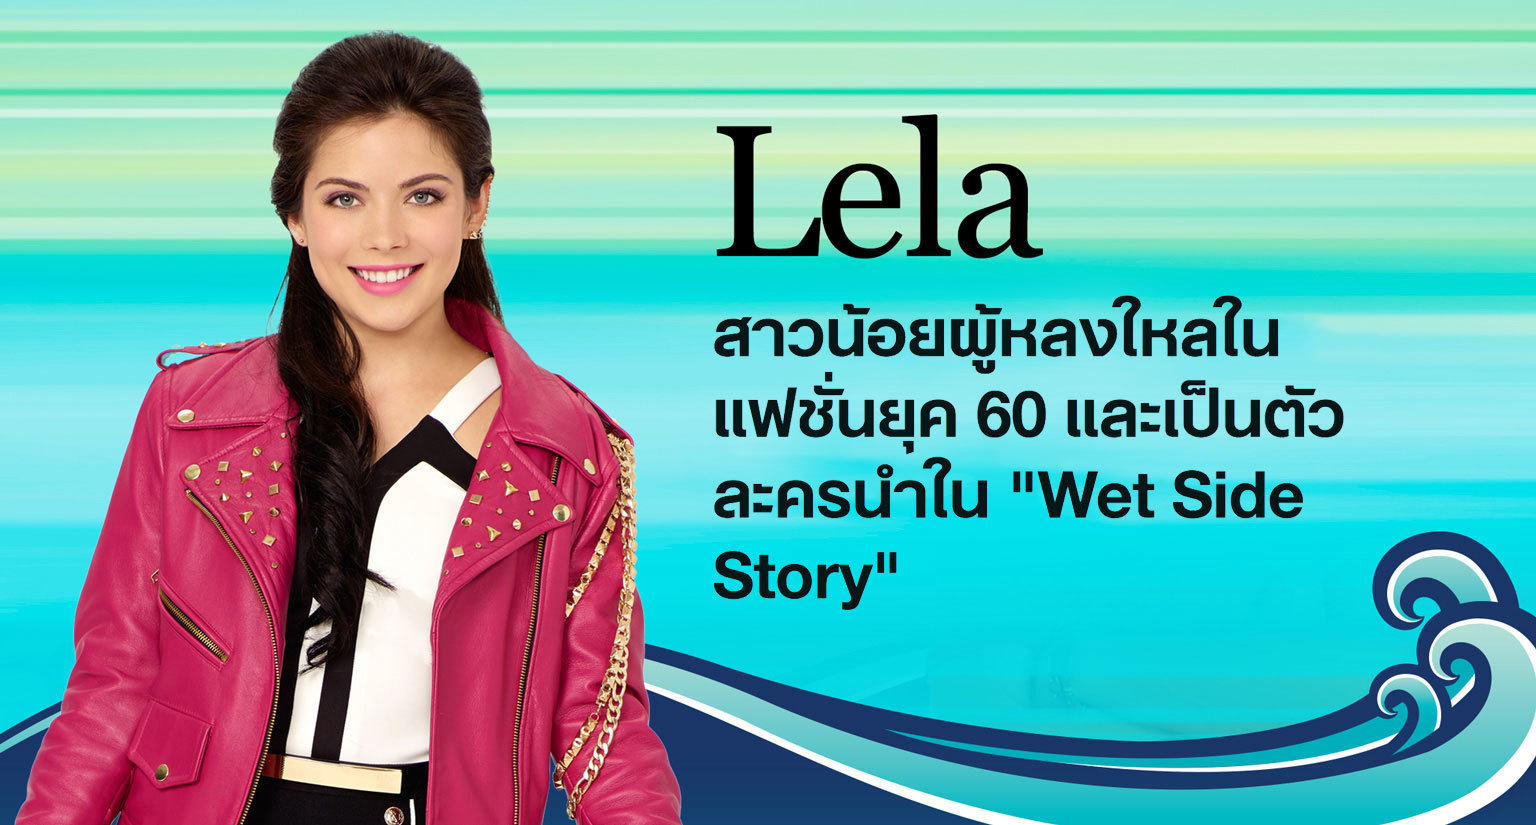 Teen Beach 2 - Show Home - Lela Character Hero - TH